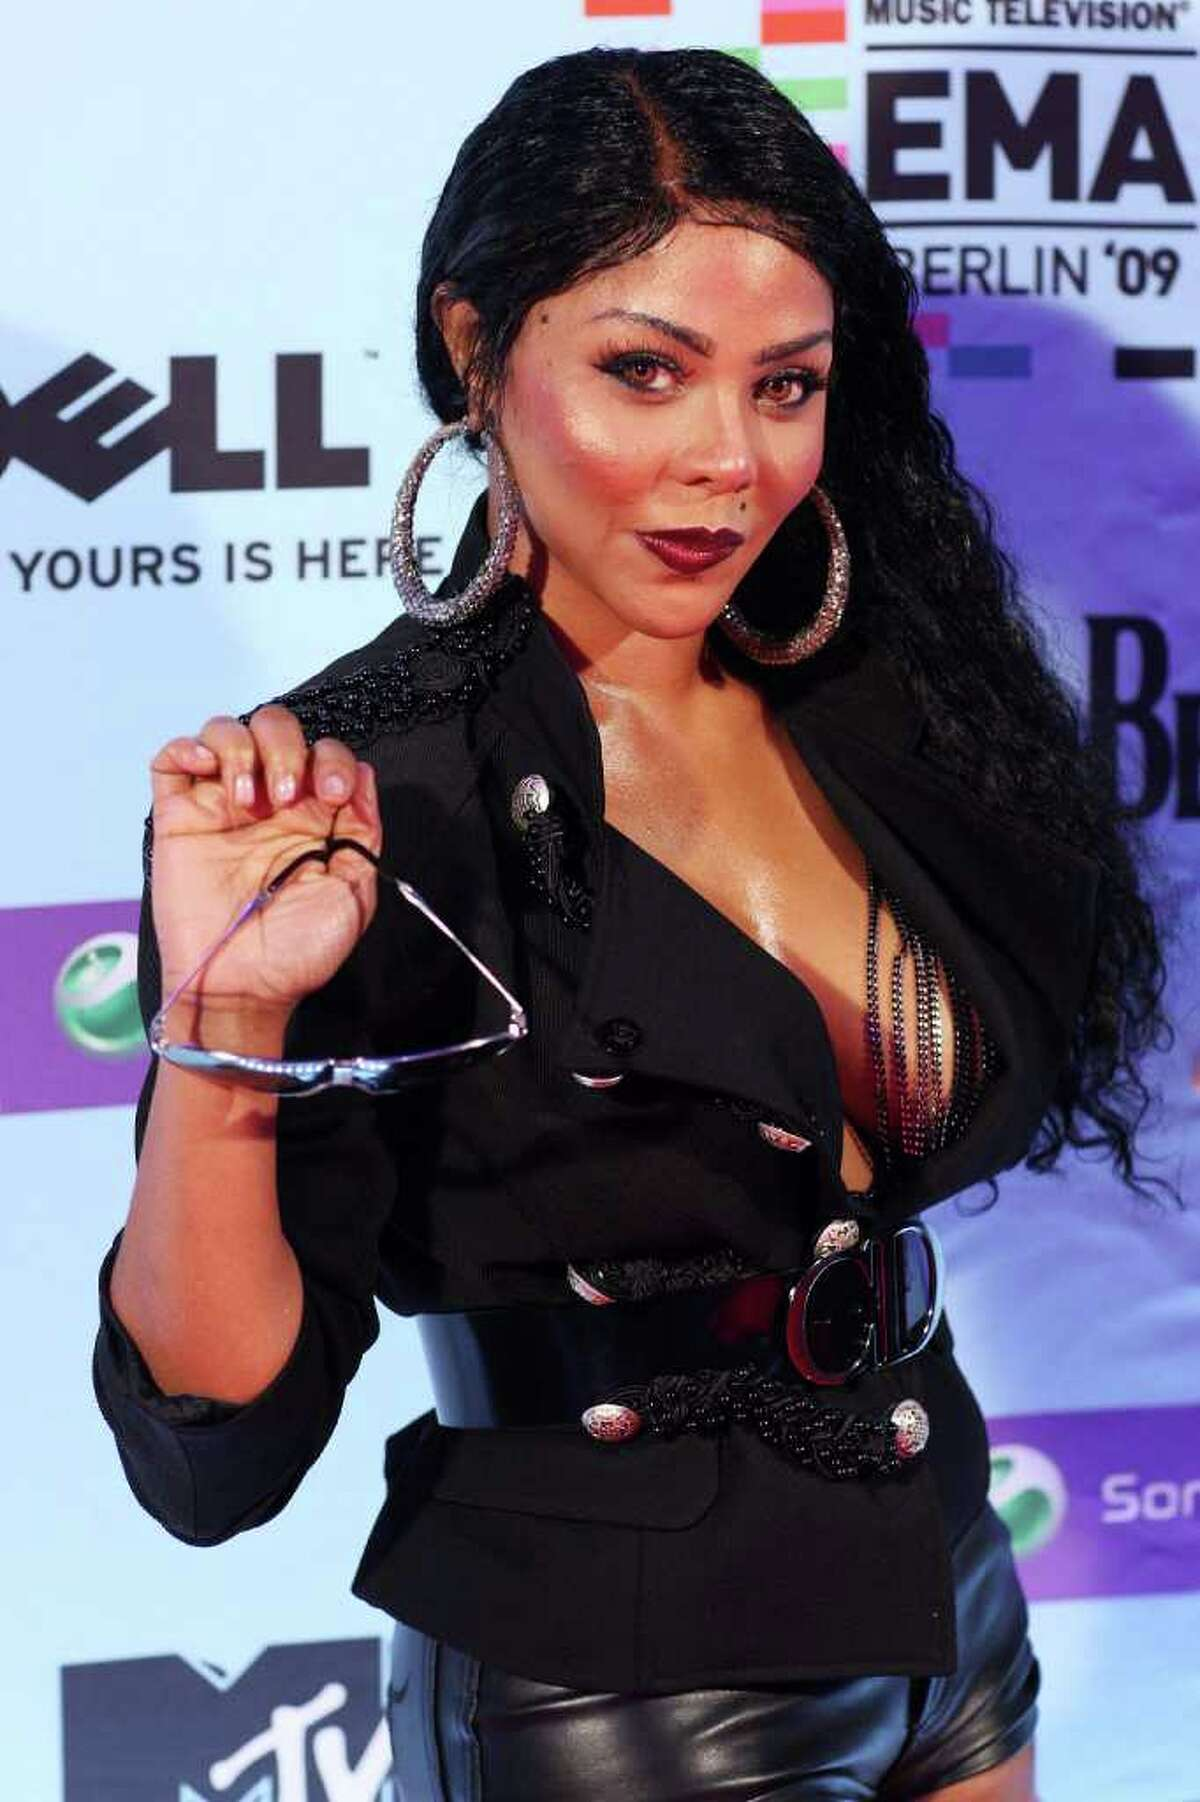 Singer Lil' Kim, seen here attending the 2009 MTV Europe Music Awards, was spotted having lunch at Siena Ristorante in Stamford Tuesday with pop singer Angelica Salem, a Stamford resident. (Photo by Dave Hogan/Getty Images)